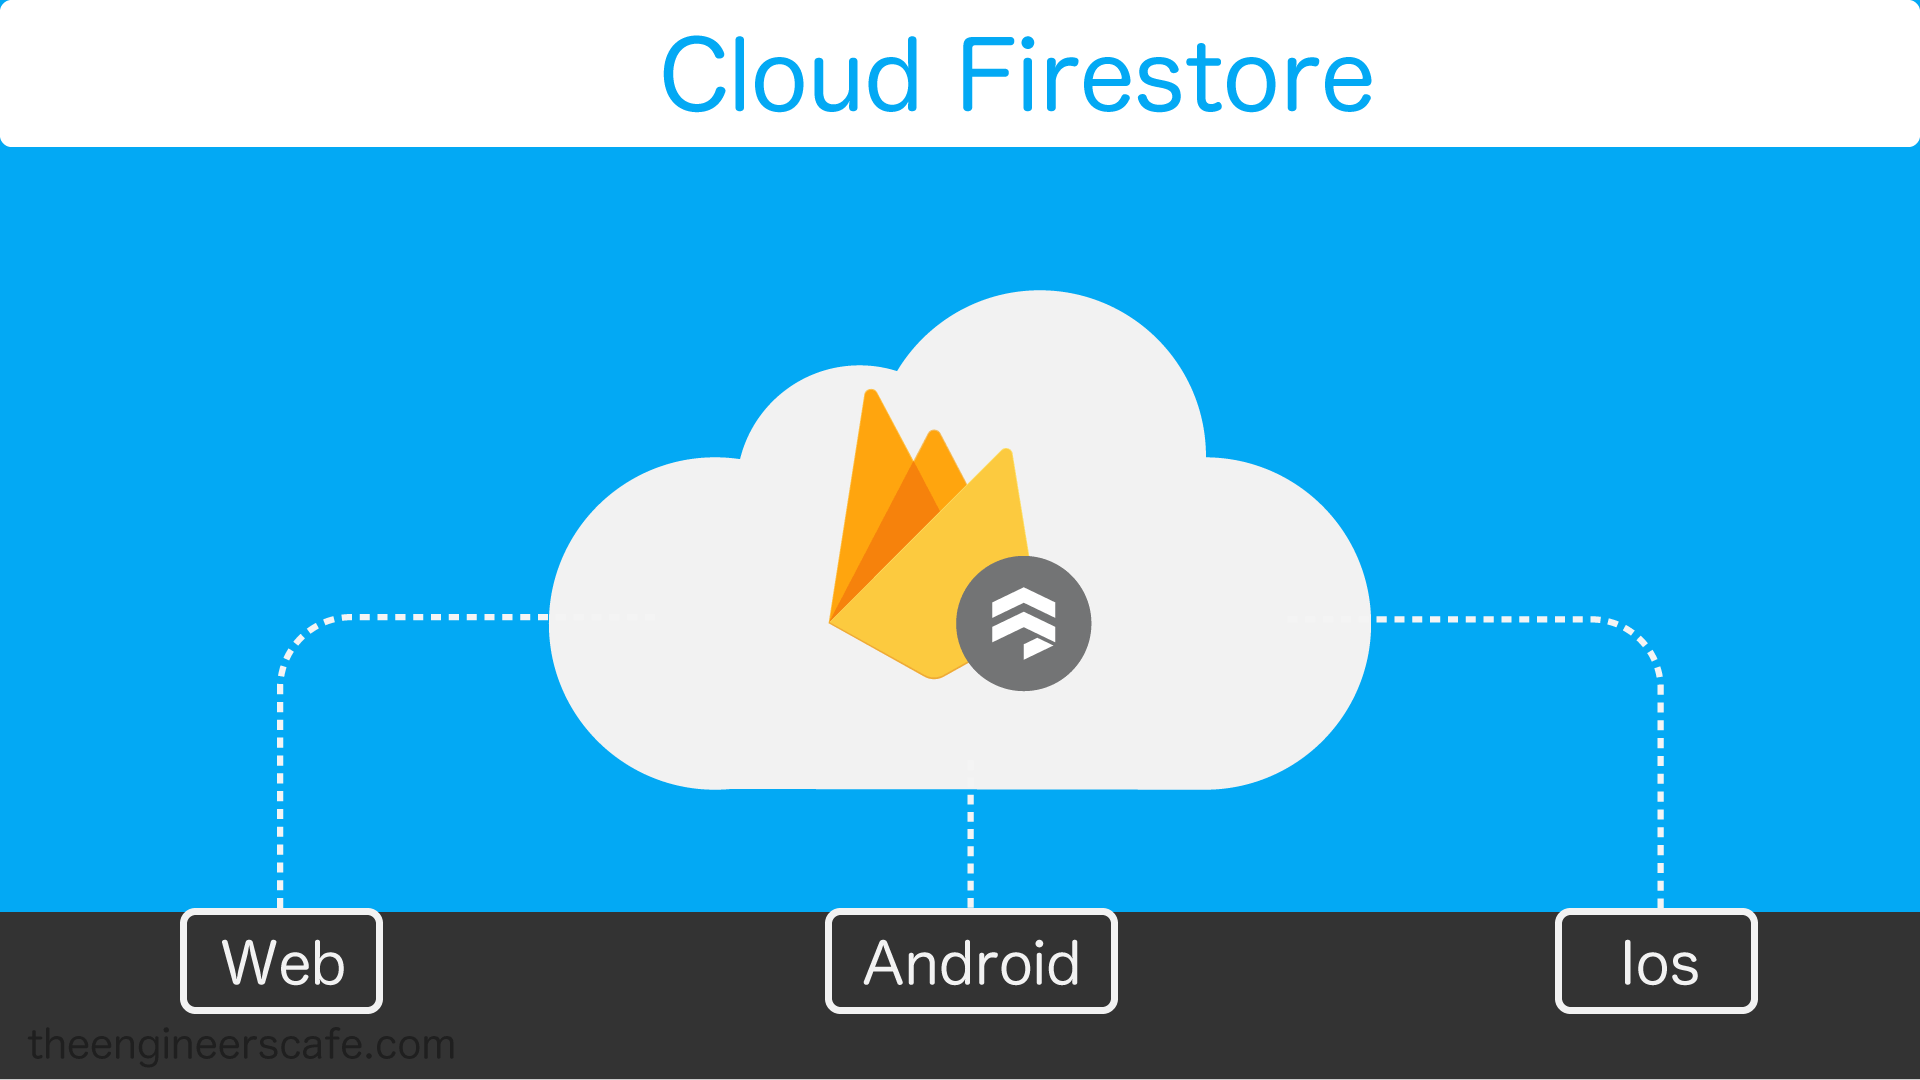 Cloud Firestore from Firebase